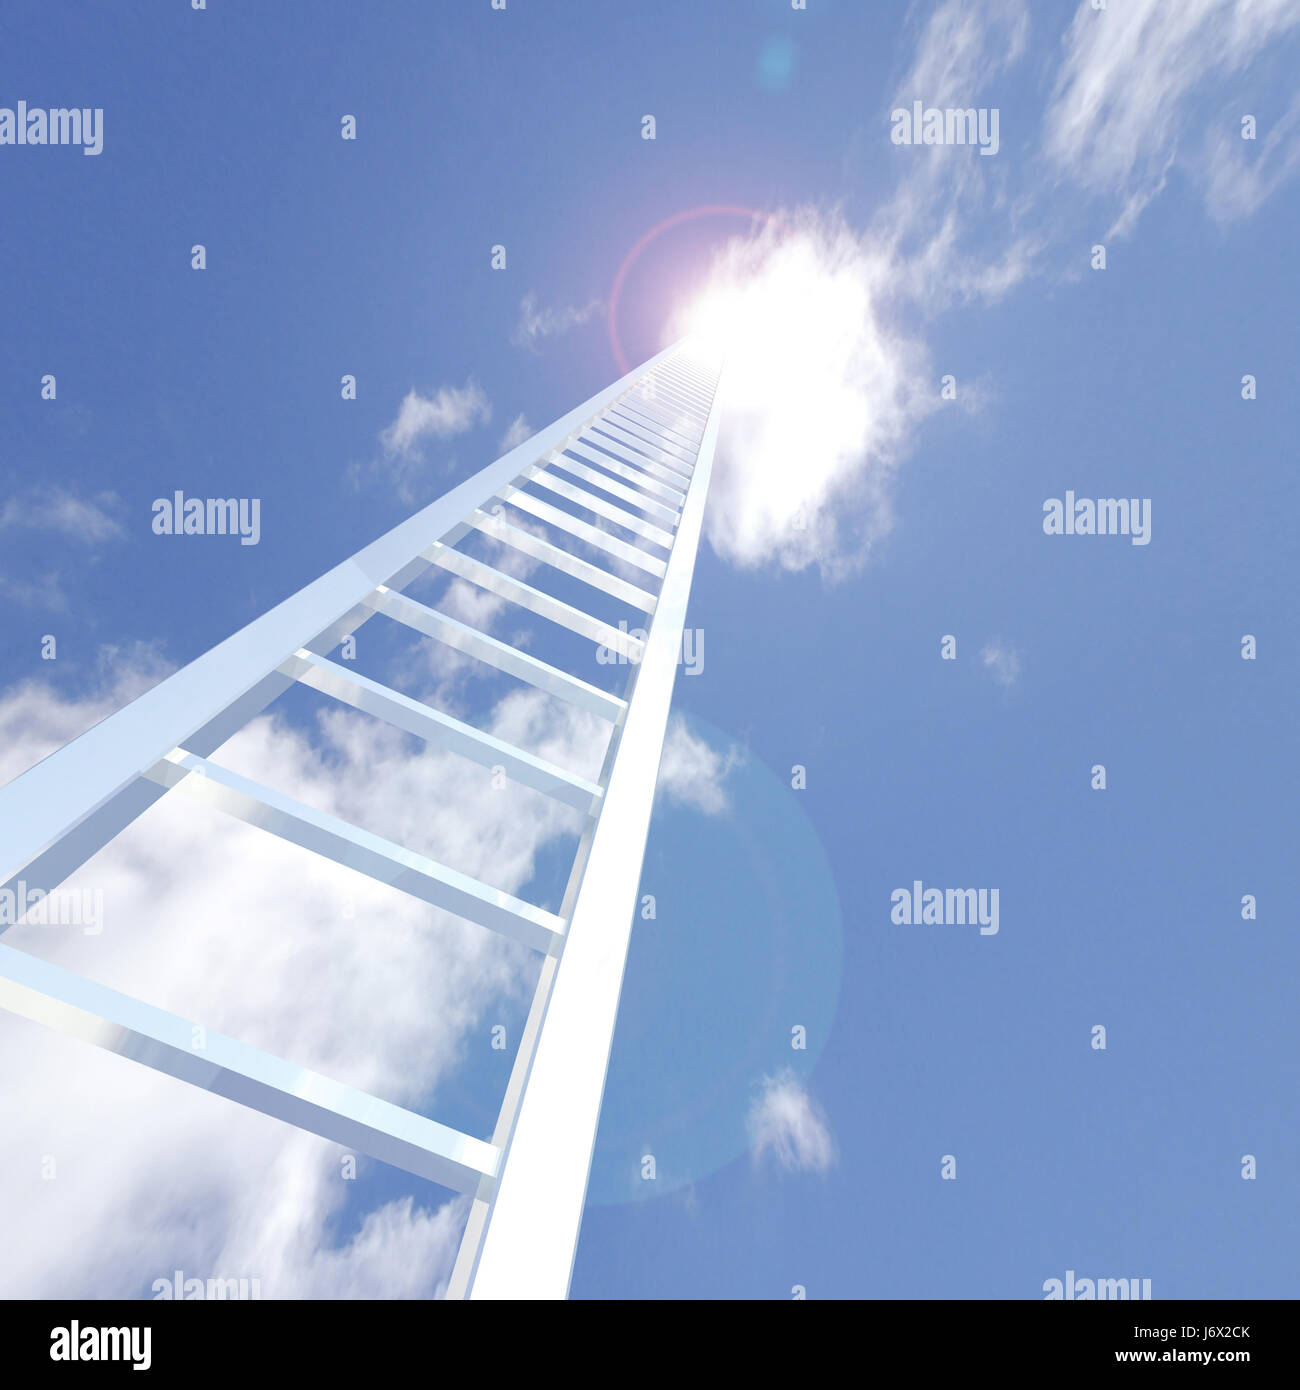 blue career up on clouds ladder white reach religion religious church model - Stock Image